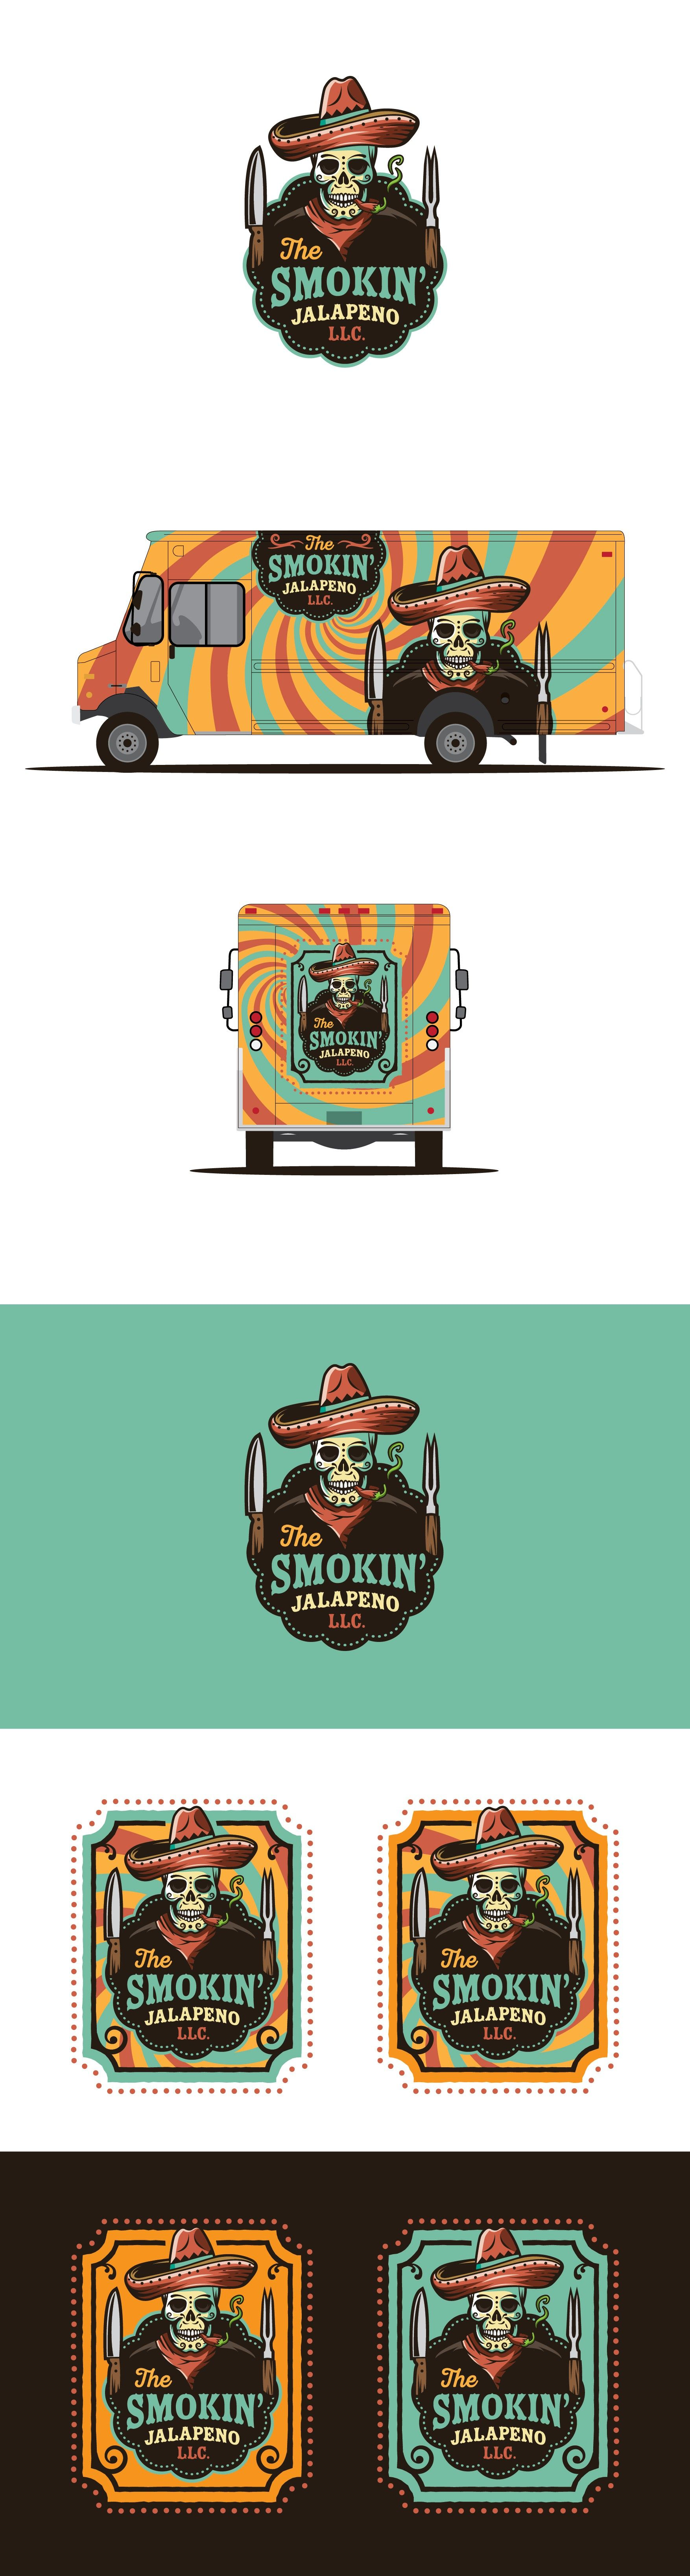 The rocket pizza food truck grits grids - 99 Of The Best Logos For Creative Inspiration This Design By Mat W Uses Dia